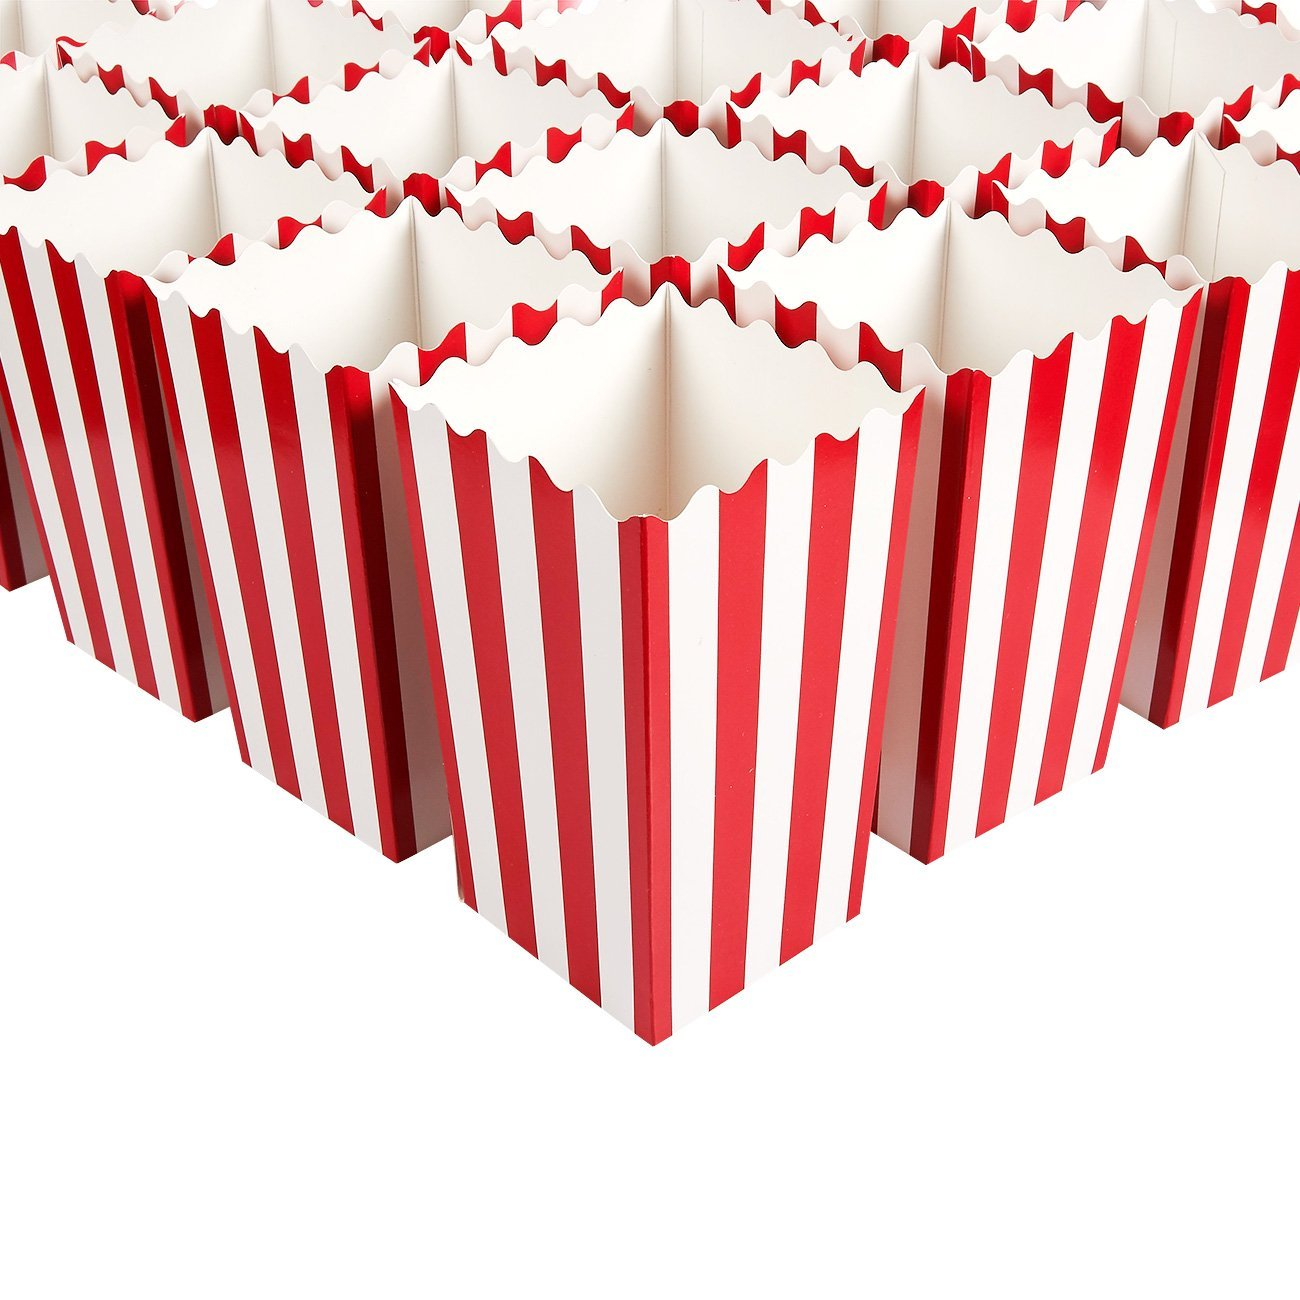 100 Pieces Red Stripe Popcorn Boxes Paper Mini Popcorn Containers Candy Snack Party Favor Boxes for Carnival Parties Birthday Movie Nights